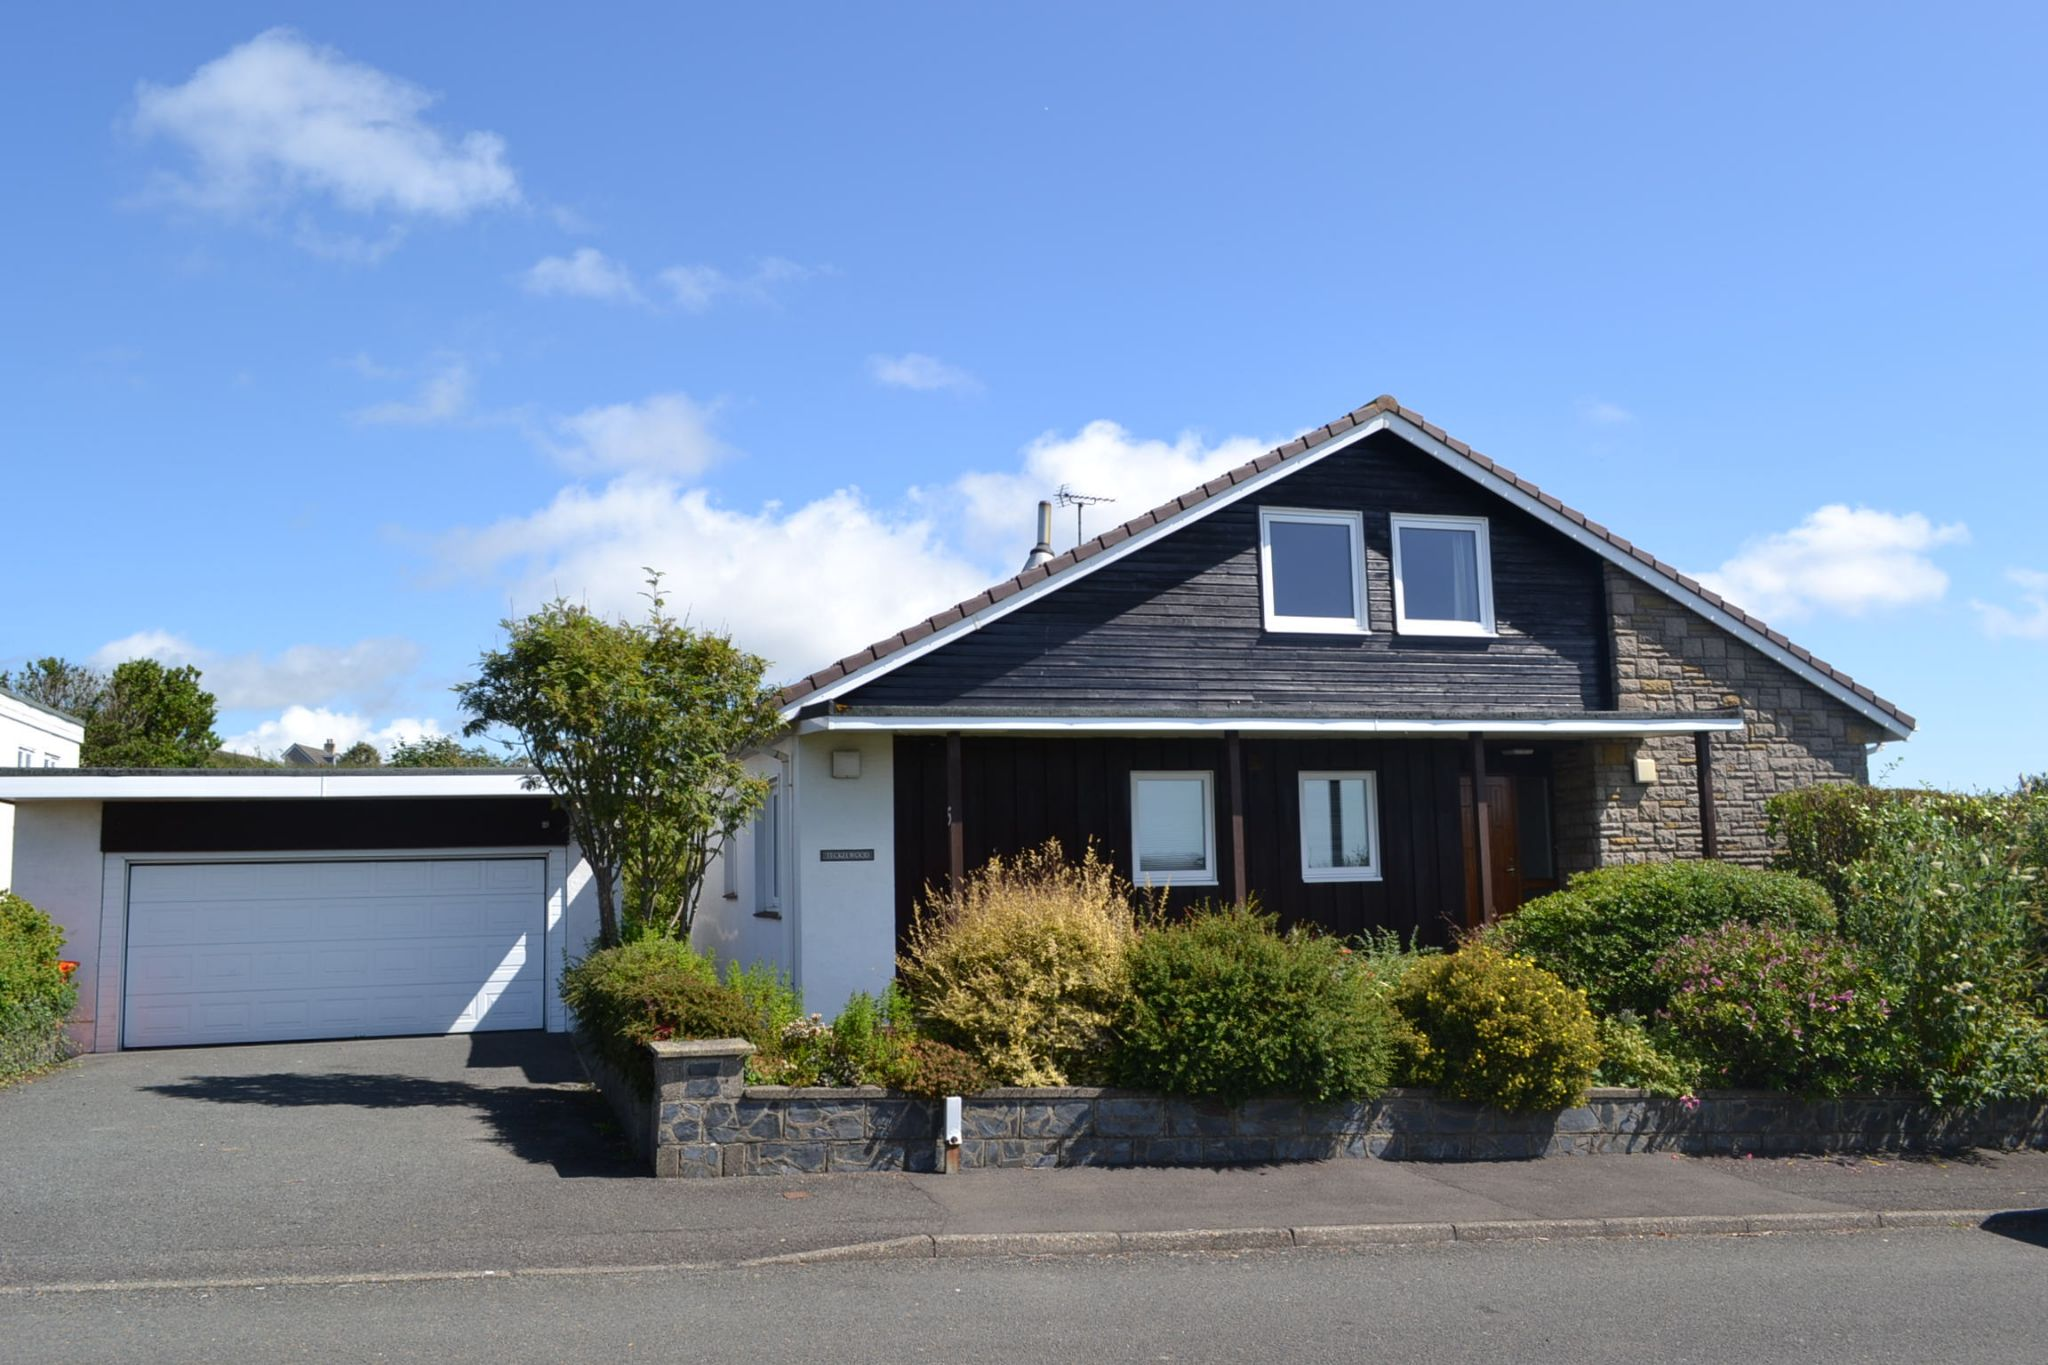 3 bedroom detached bungalow For Sale in Ballasalla - Photograph 1